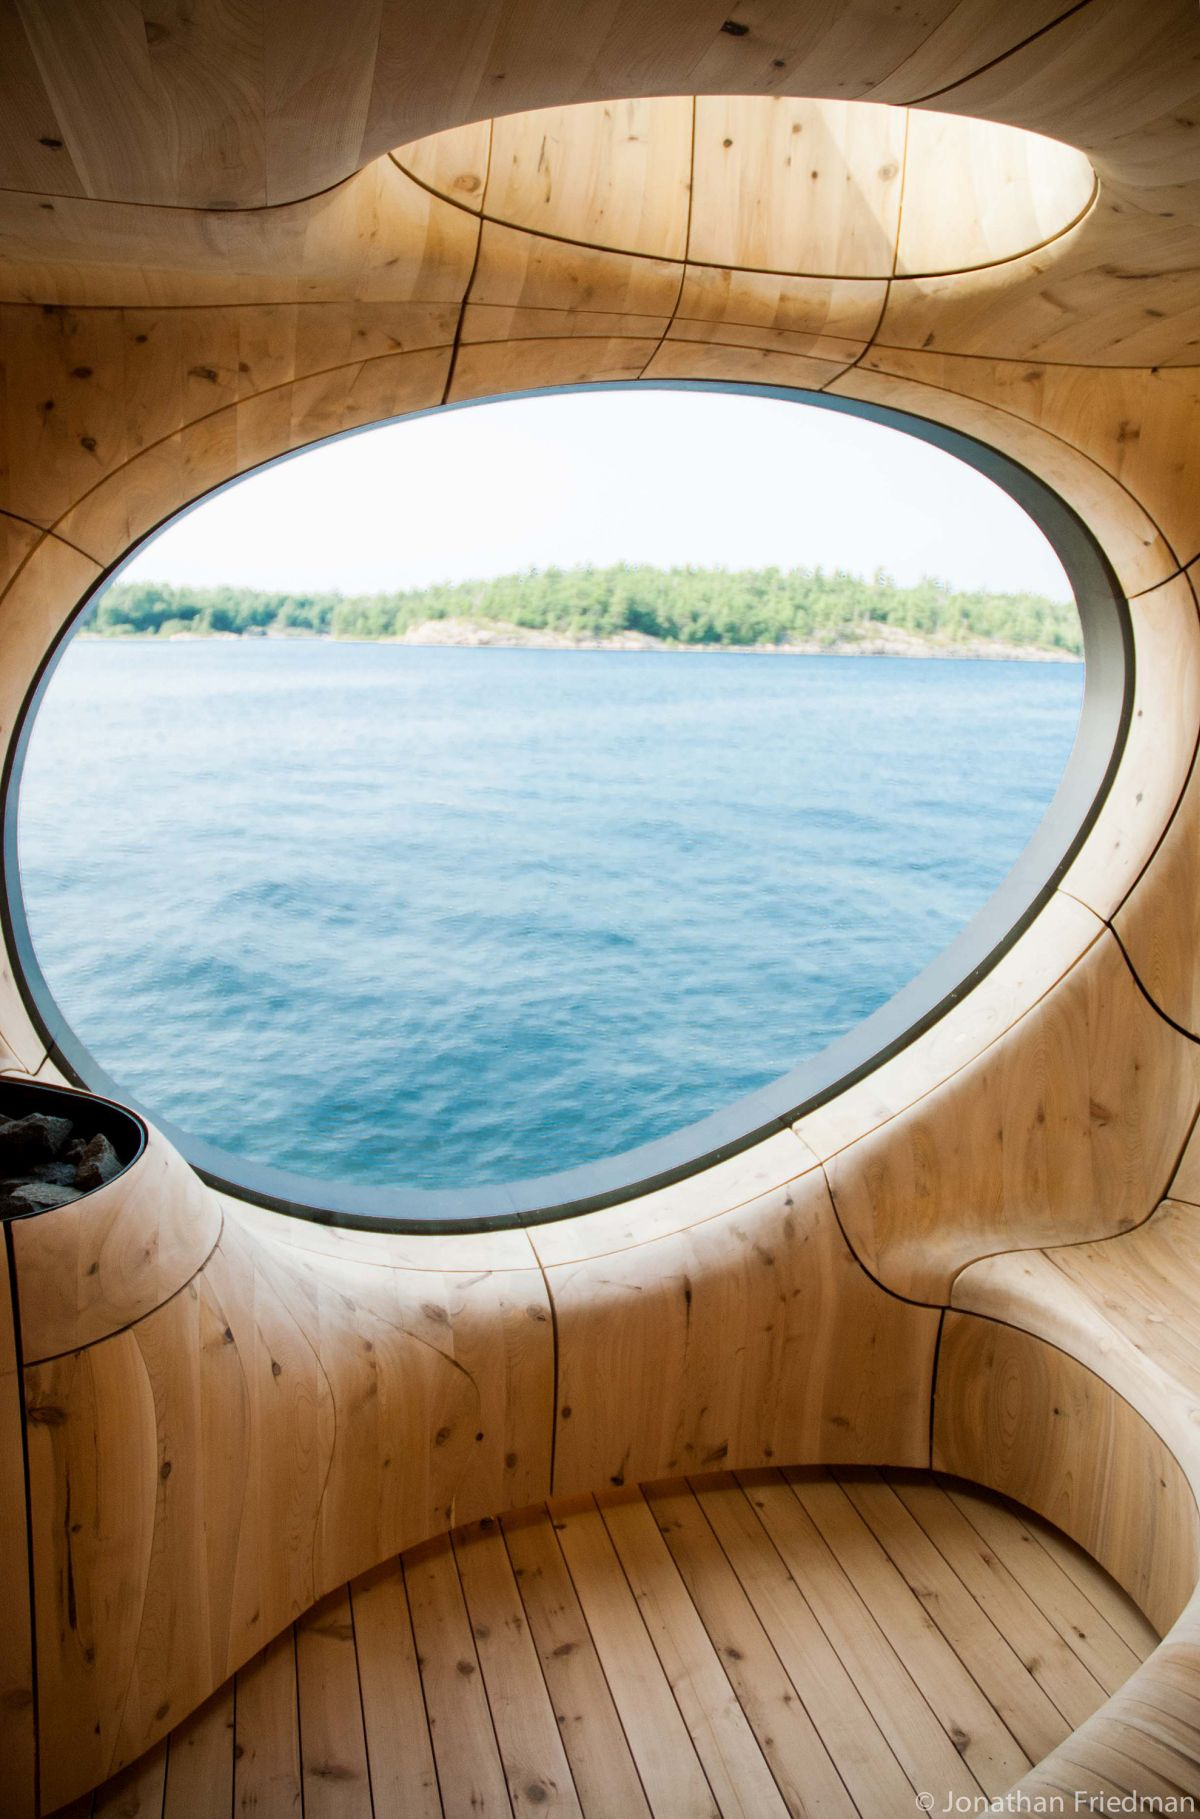 Grotto Sauna by Partisans View